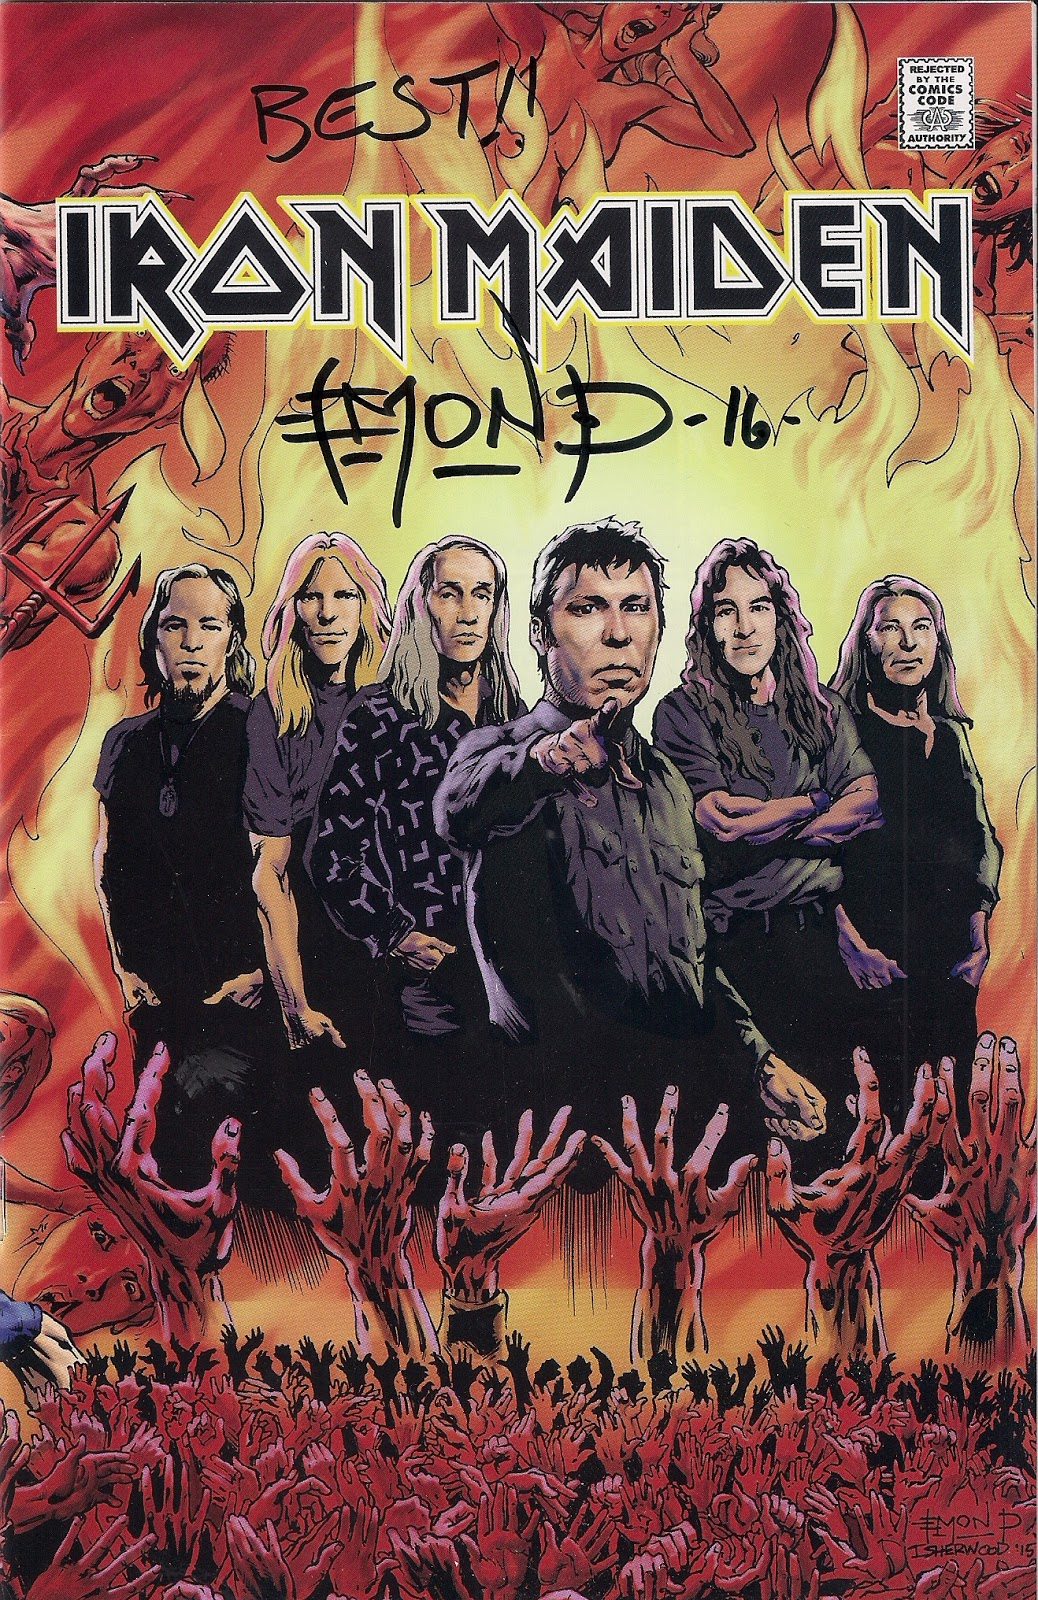 the sault metal scene iron maiden comic book review new videos as you remember local artist darren emond launched the iron maiden comic book that he did the pencil artwork for at the rad zone on saturday